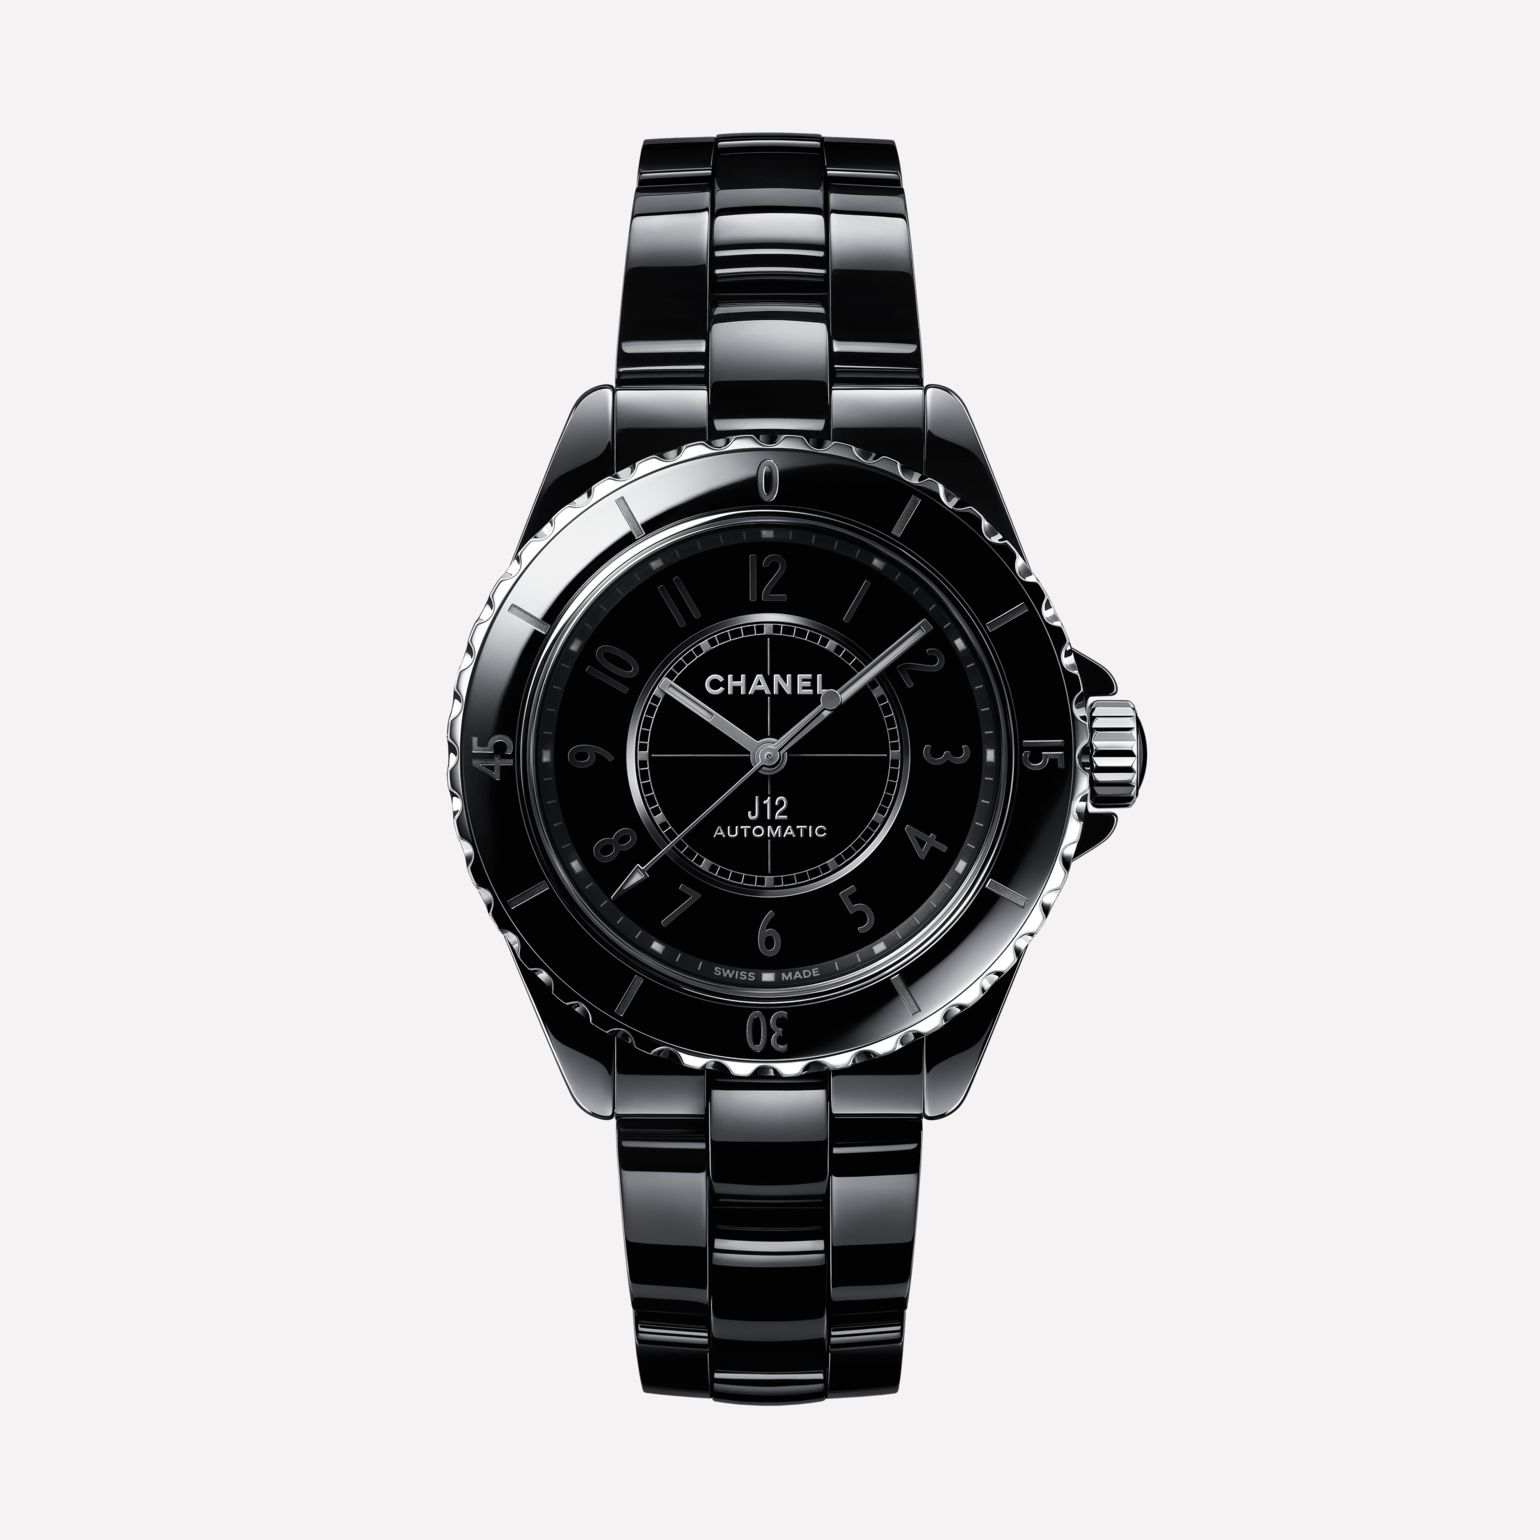 Chanel J12 Phantom Watch Black Highly Resistant Ceramic and Steel